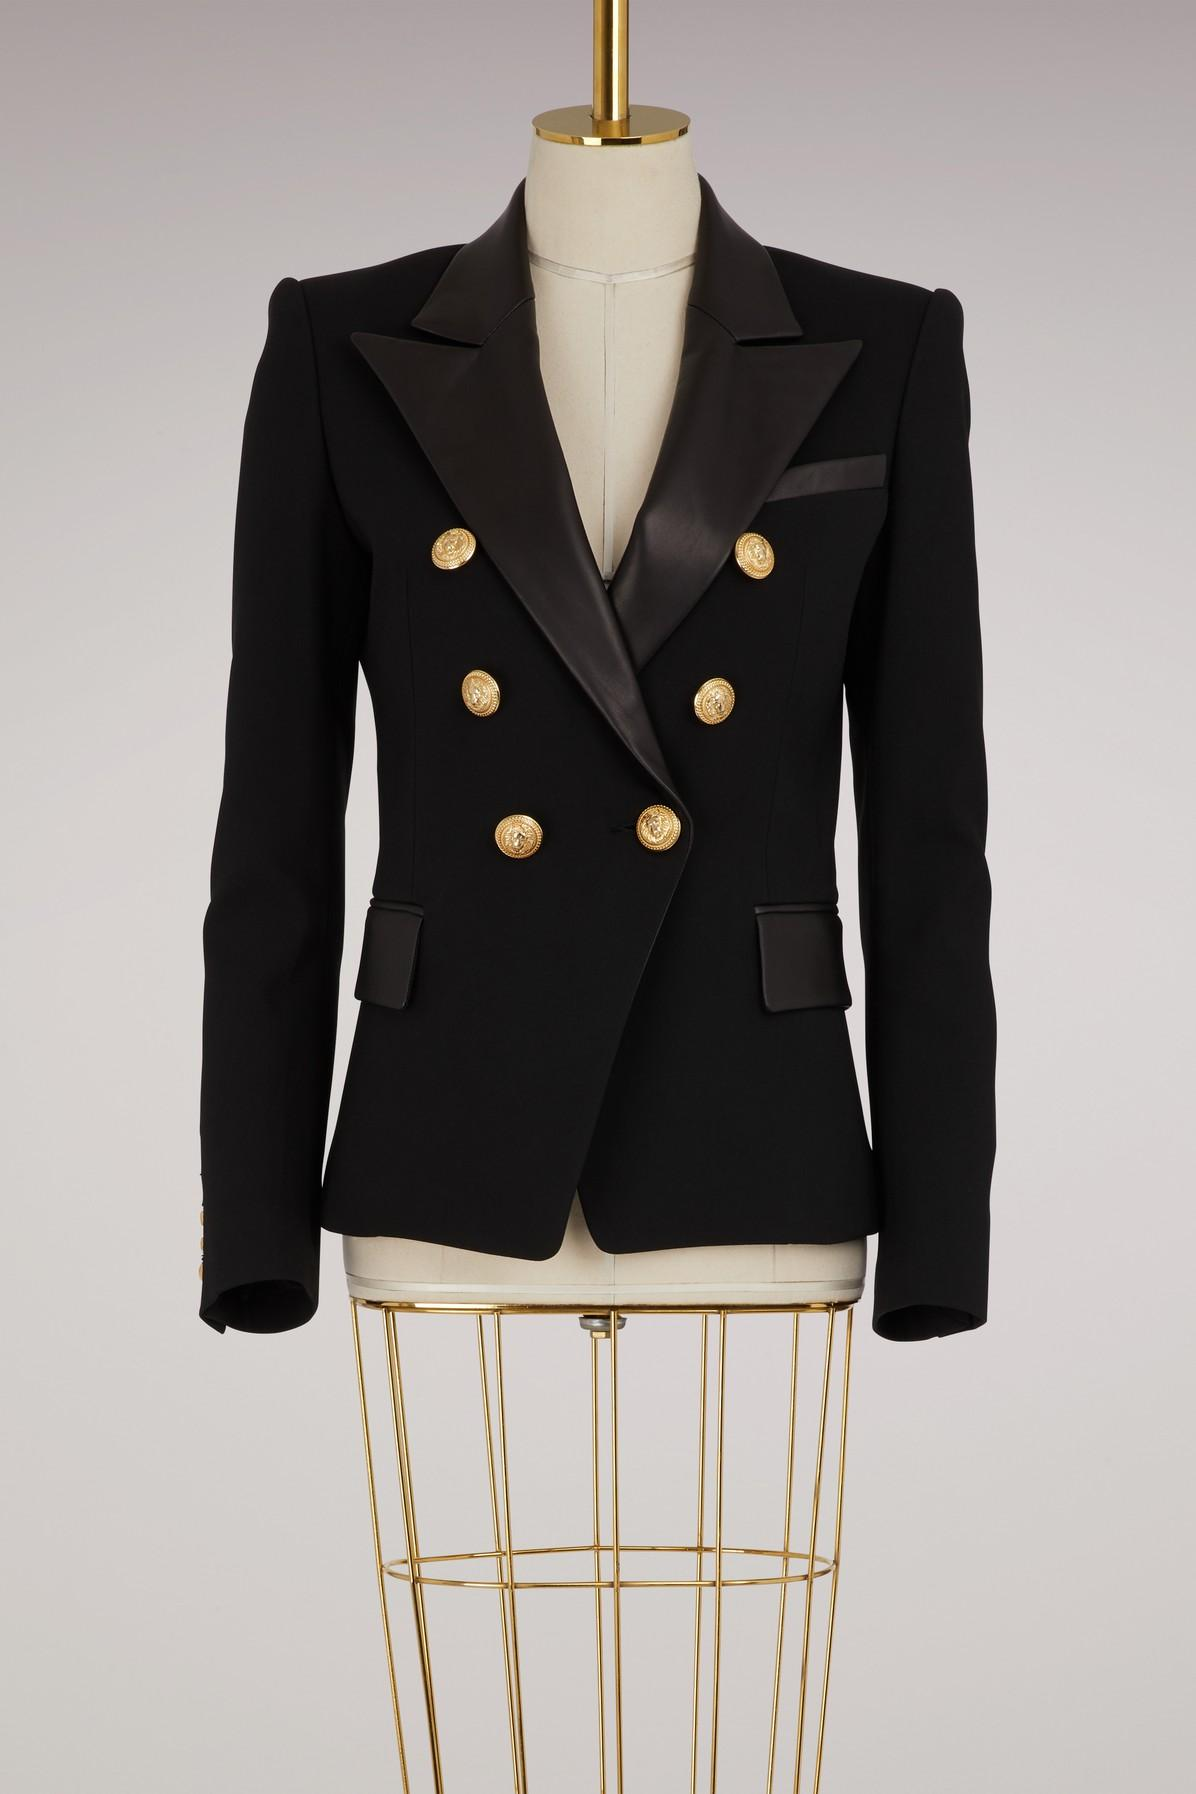 Balmain Leather-trimmed Wool And Cashmere-blend Jacket In Black